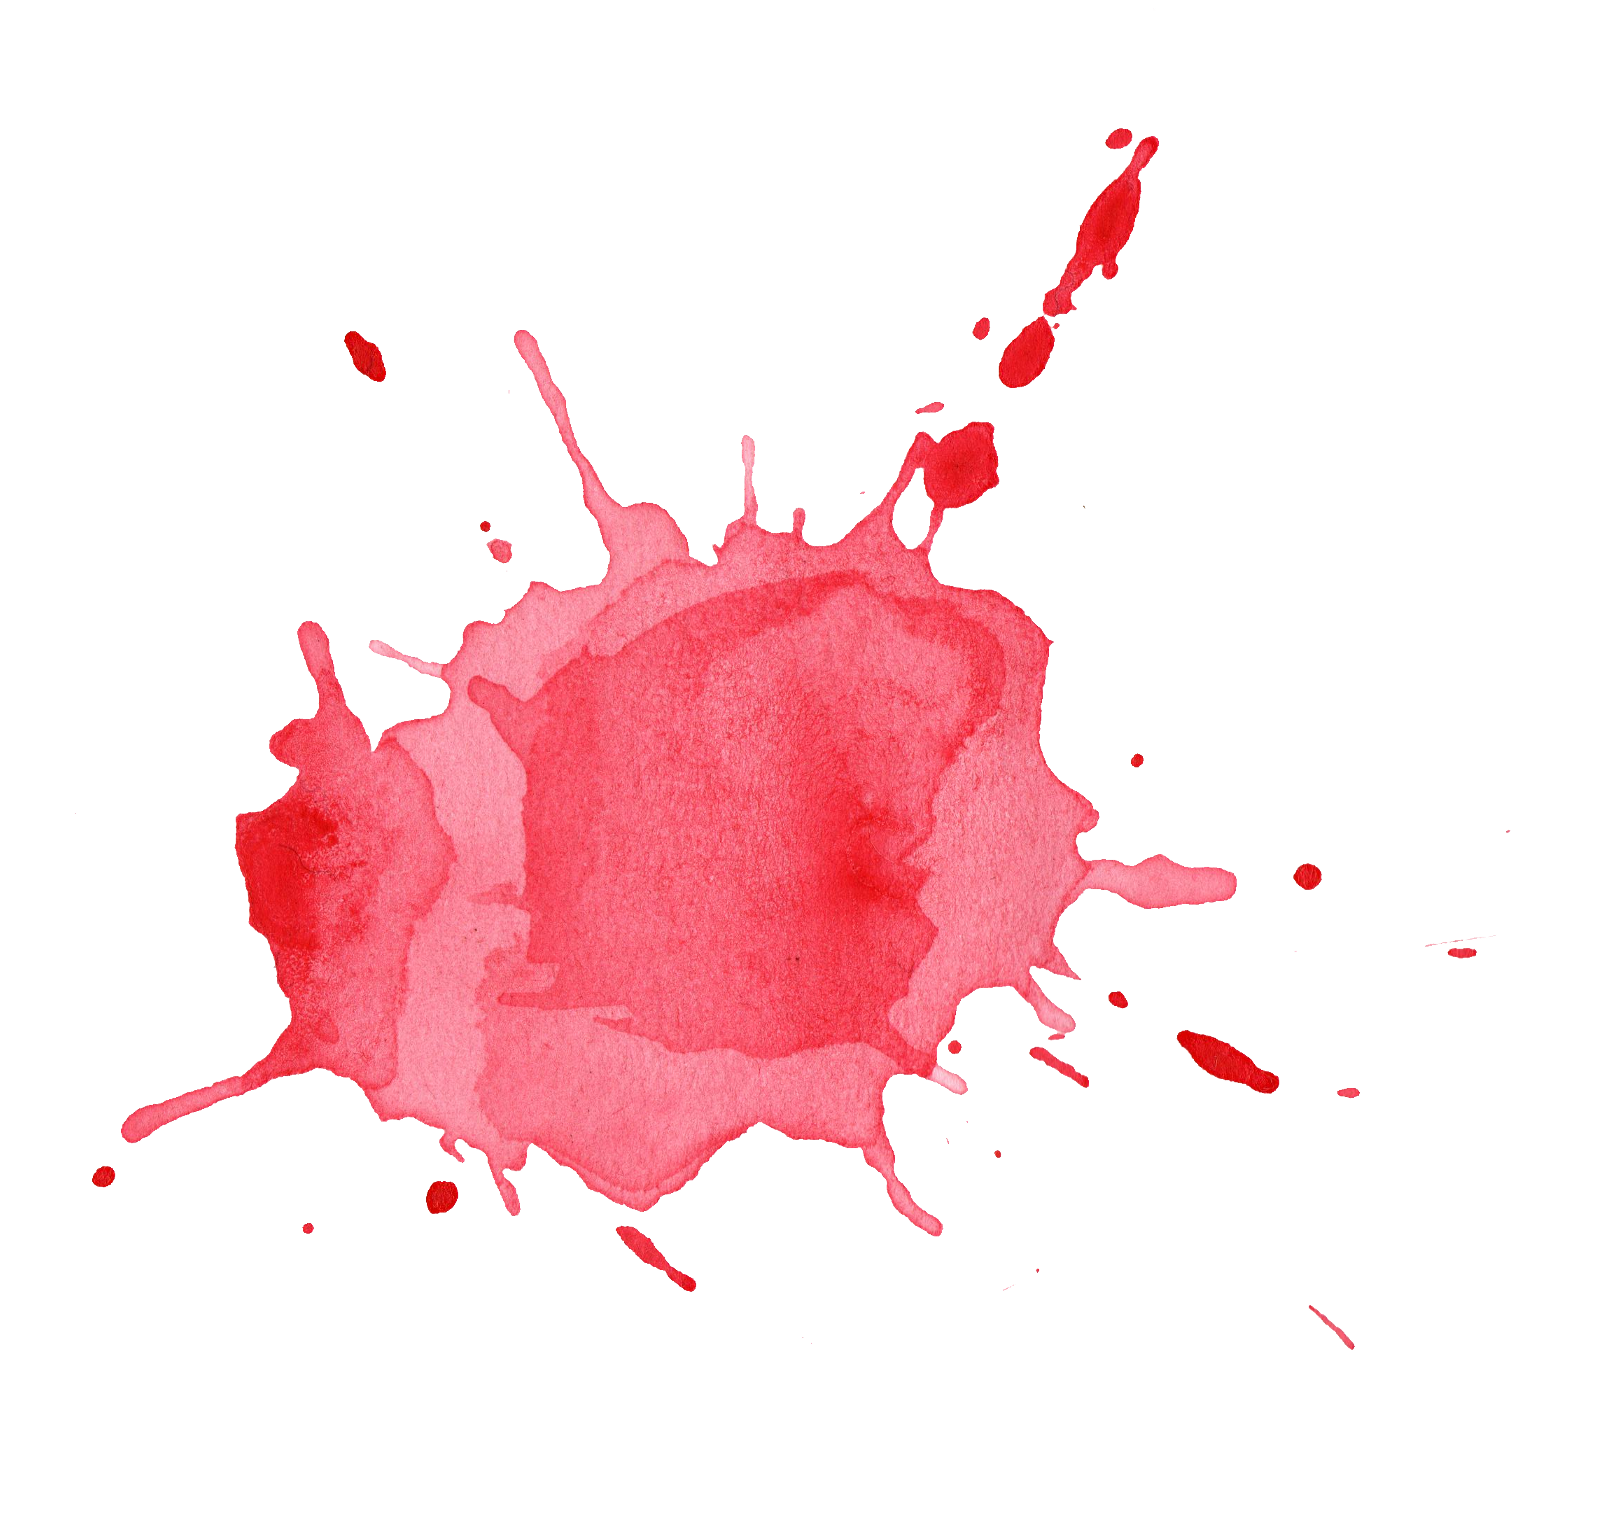 Water color png. Red watercolor splatter